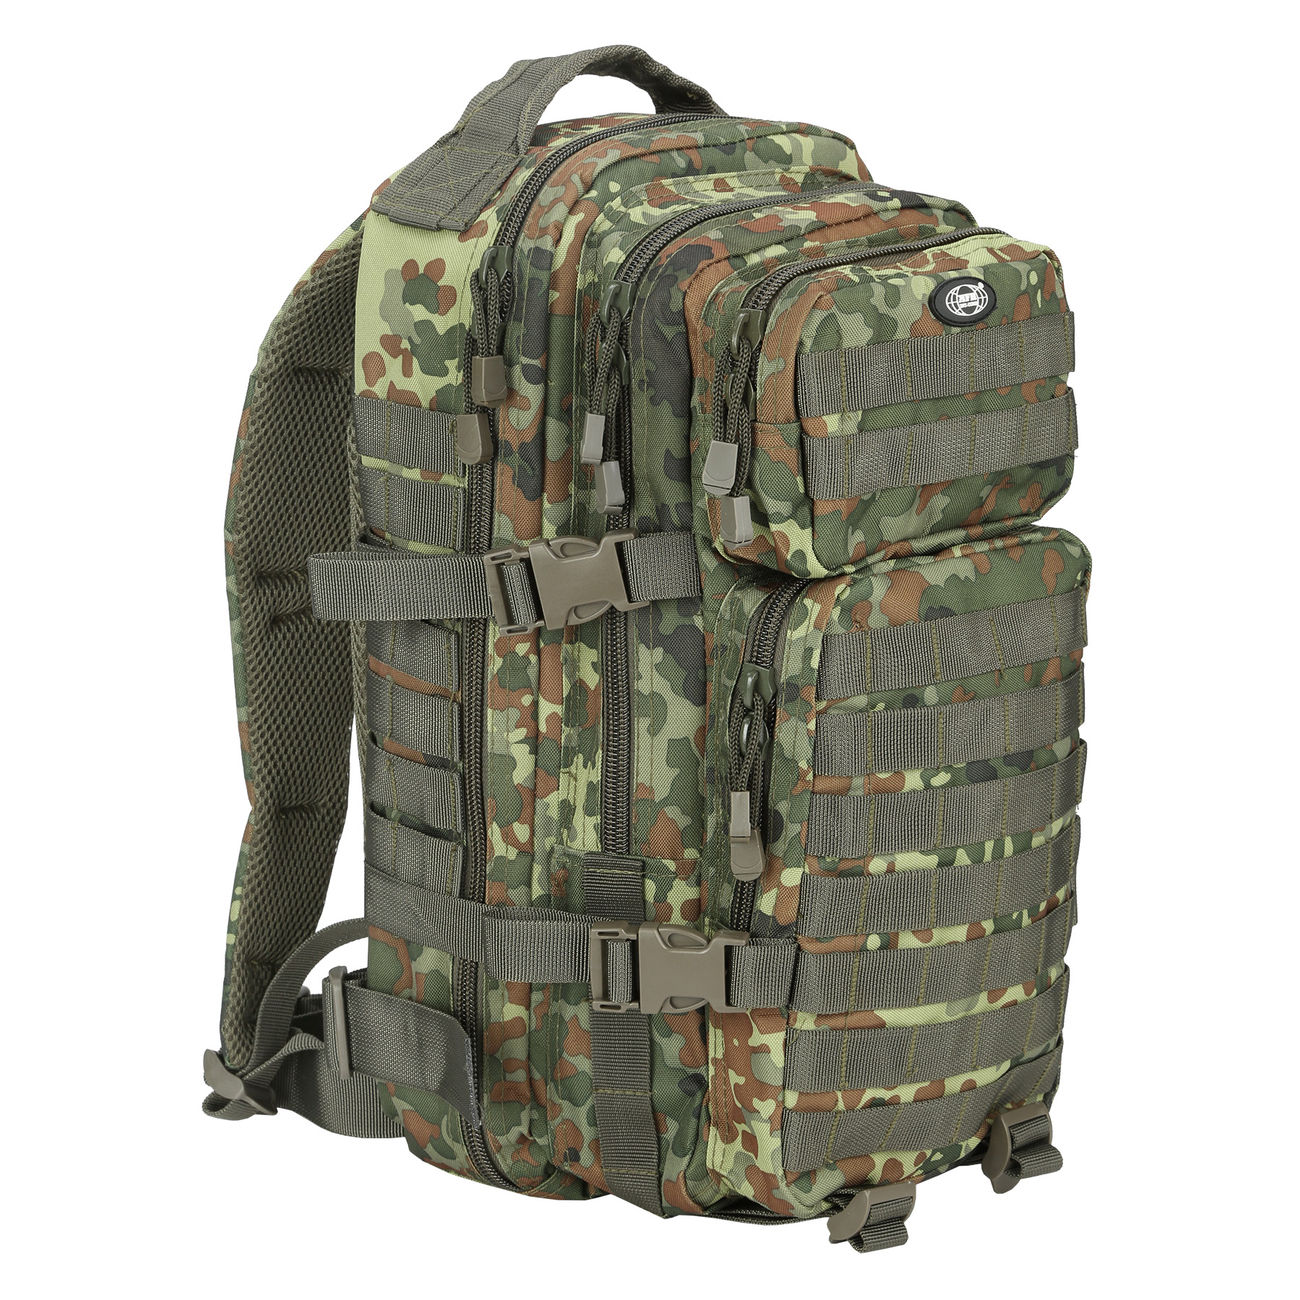 MFH Rucksack US Assault flecktarn 0